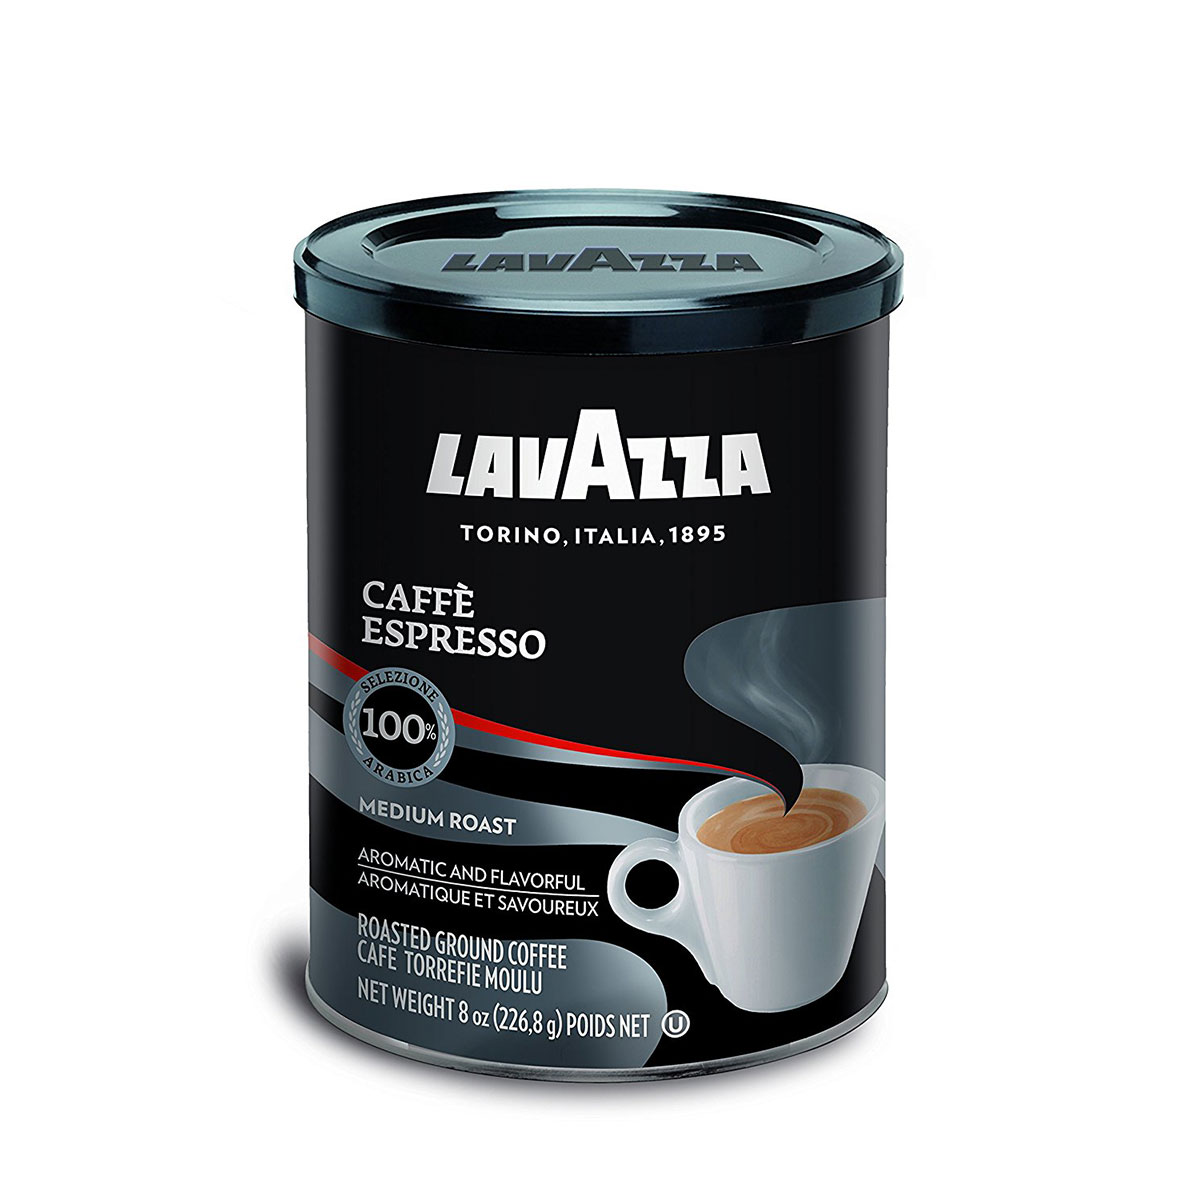 Lavazza Caffe Espresso Ground Coffee Blend, Medium Roast, 8-Ounce Can